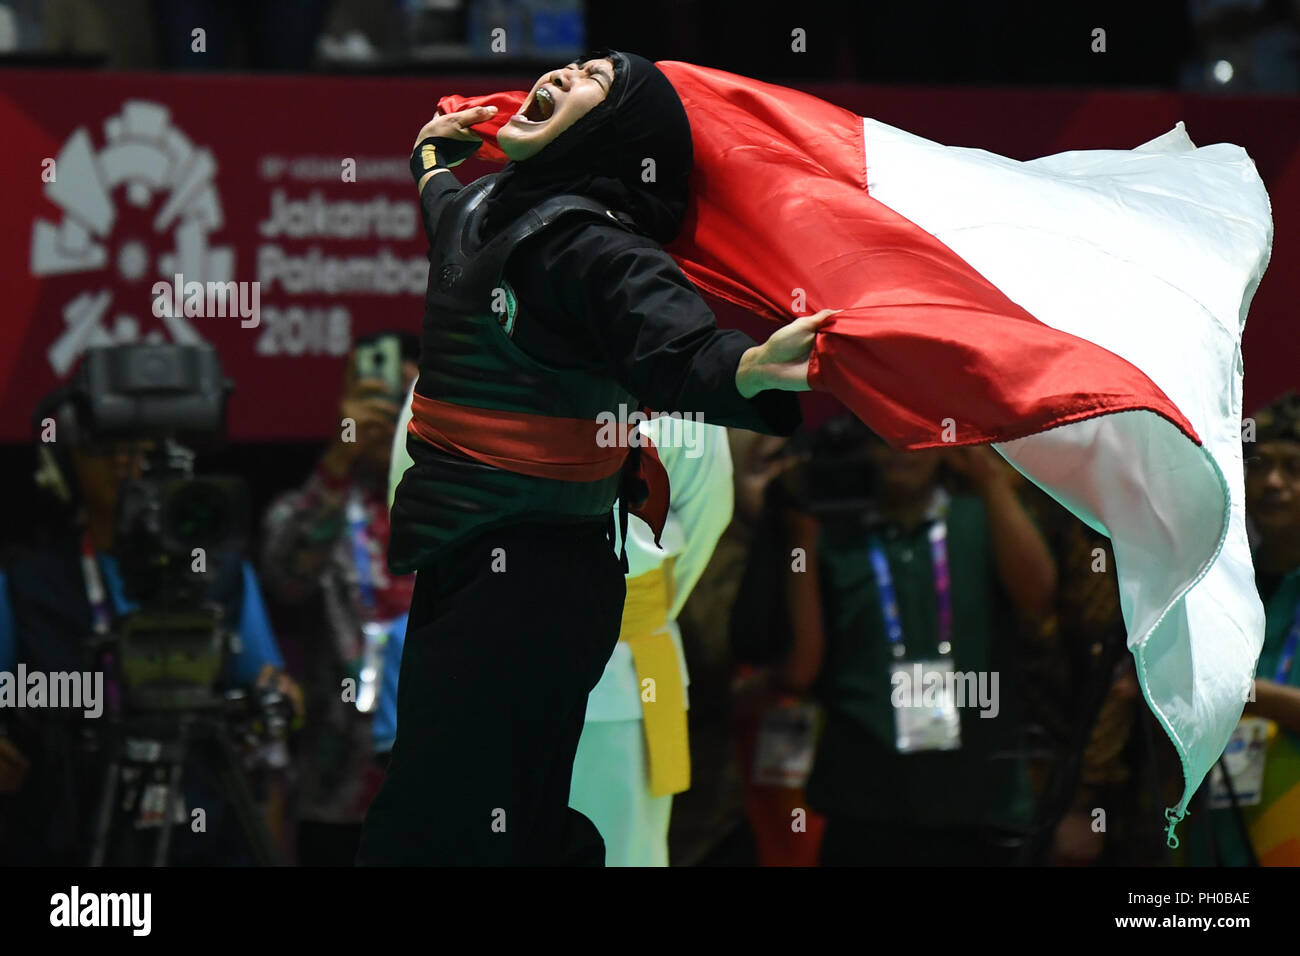 Jakarta, Indonesia. 29th Aug, 2018. Pipiet Kamelia of Indonesia celebrates after the Pencak Silat Women's 60kg to 65kg gold medal match agaisnt Nguyen Thi Cam Nhi of Vietnam at the 18th Asian Games in Jakarta, Indonesia, Aug. 29, 2018. Credit: Pan Yulong/Xinhua/Alamy Live News - Stock Image